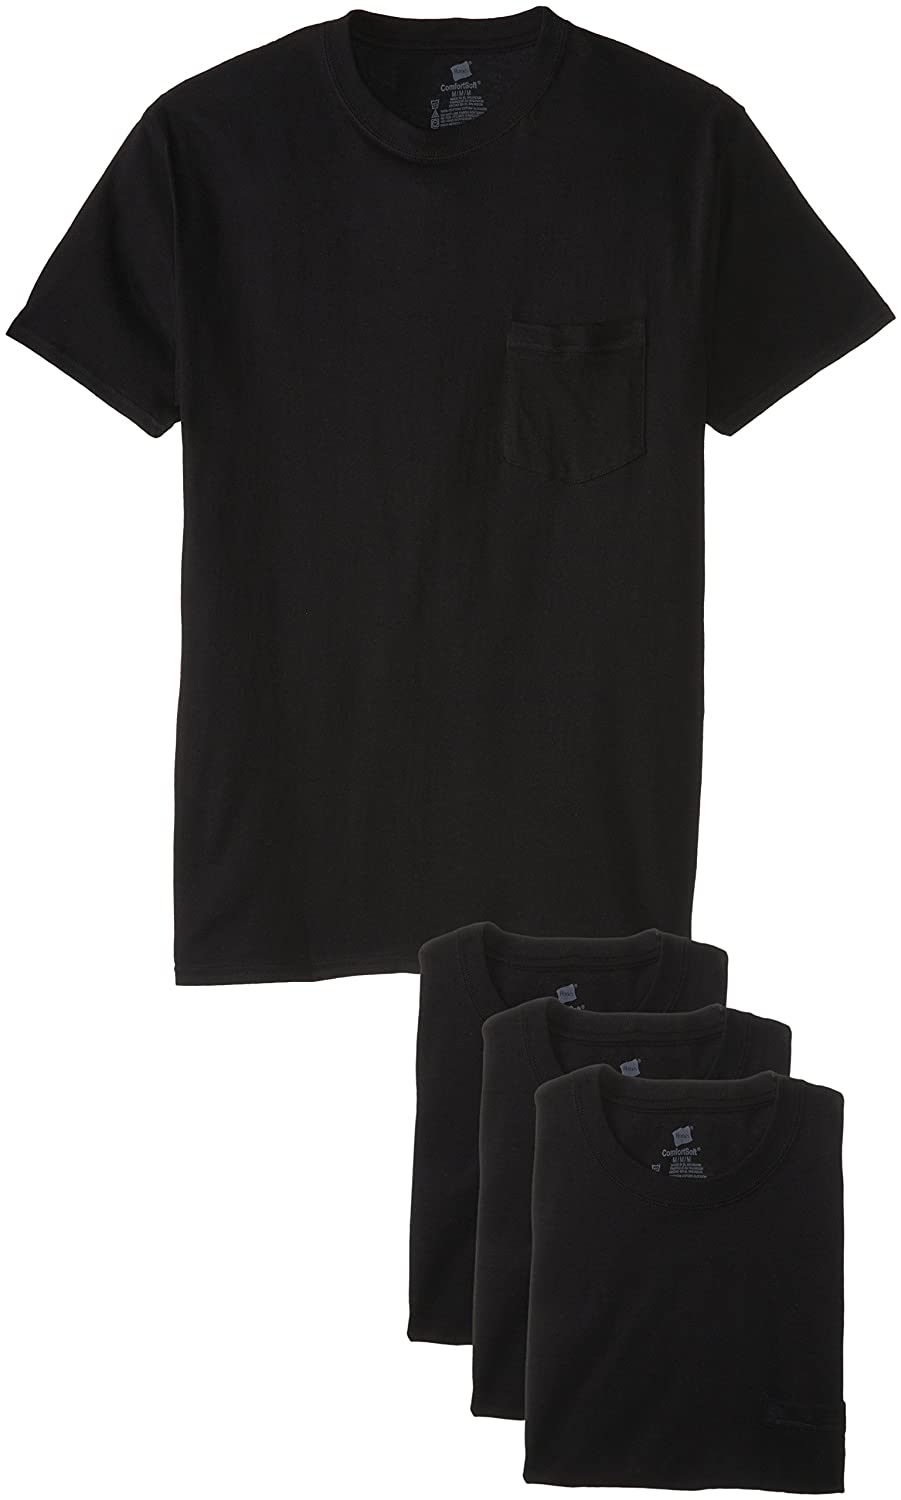 9fde9a01 Four crew-neck T-shirts with tagless collar and short sleeves. Fresh IQ  advanced odor protection technology attacks odor-causing bacteria in your  clothing ...